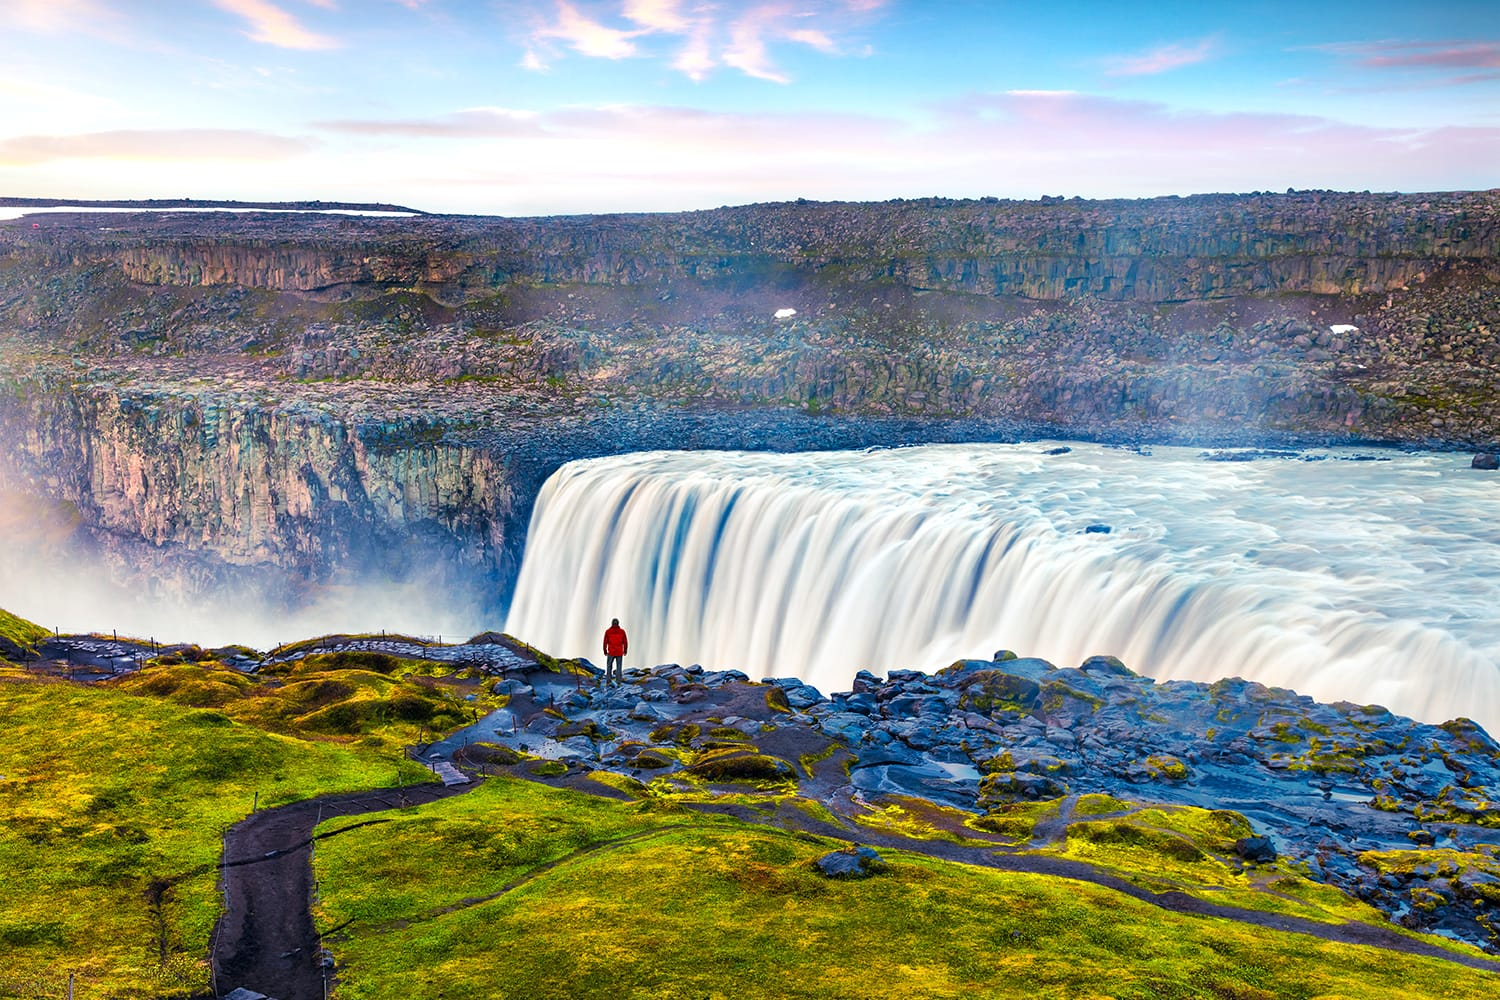 Tourist admiring view of falling water of the most powerful waterfall in Europe - Dettifoss. Colorful summer sunrise in Jokulsargljufur National Park, Iceland.